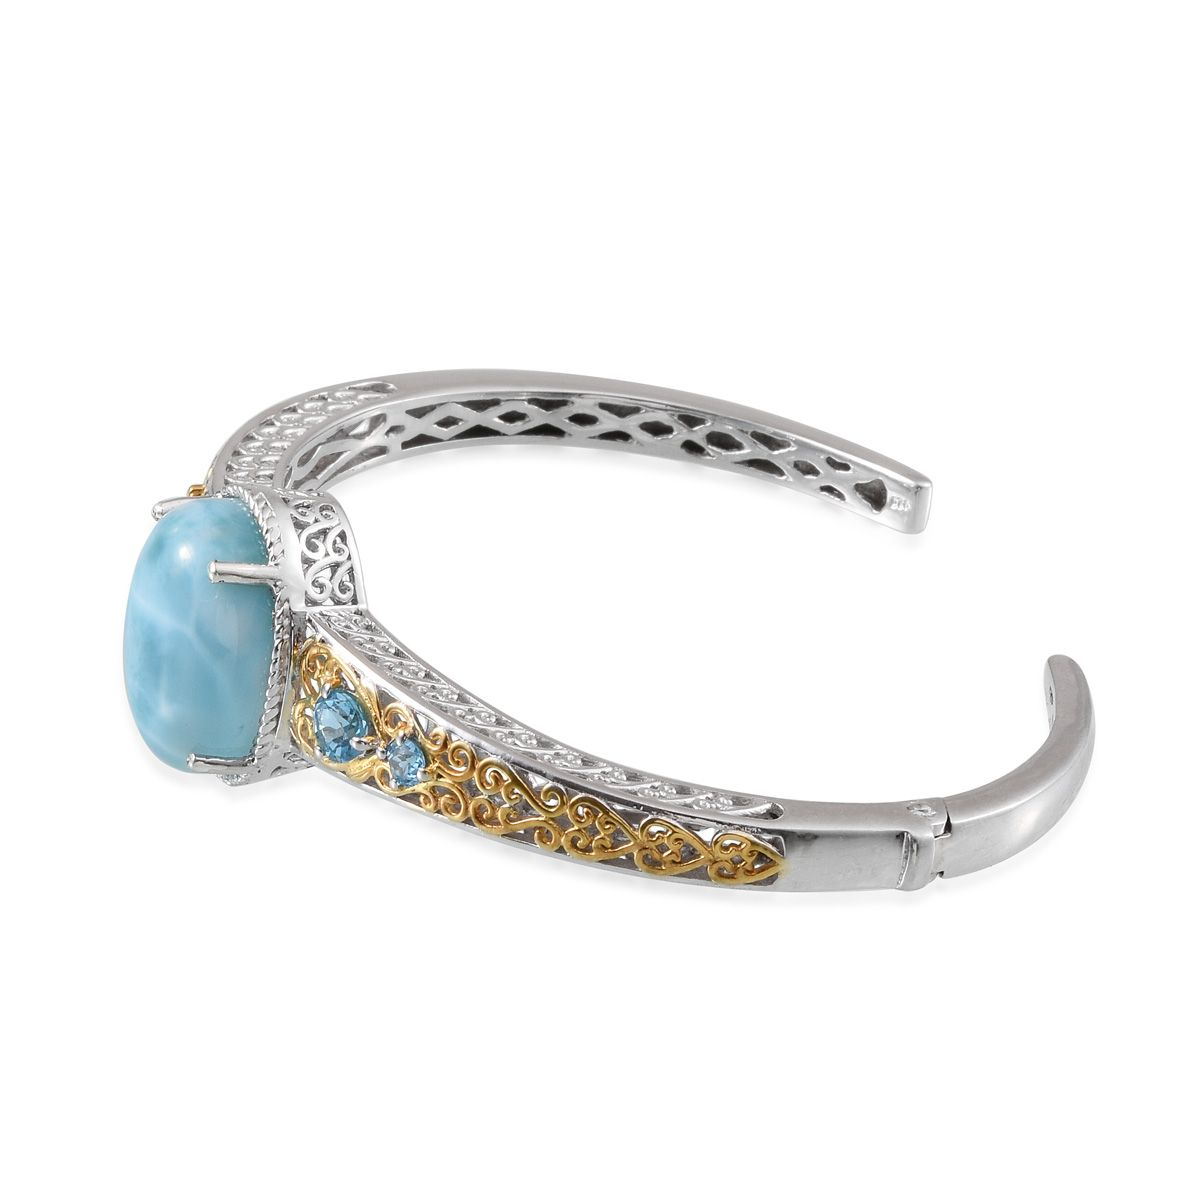 Larimar, Electric Blue Topaz 14K YG and Platinum Over Sterling Silver Openwork Cuff TGW 21.76 Cts.